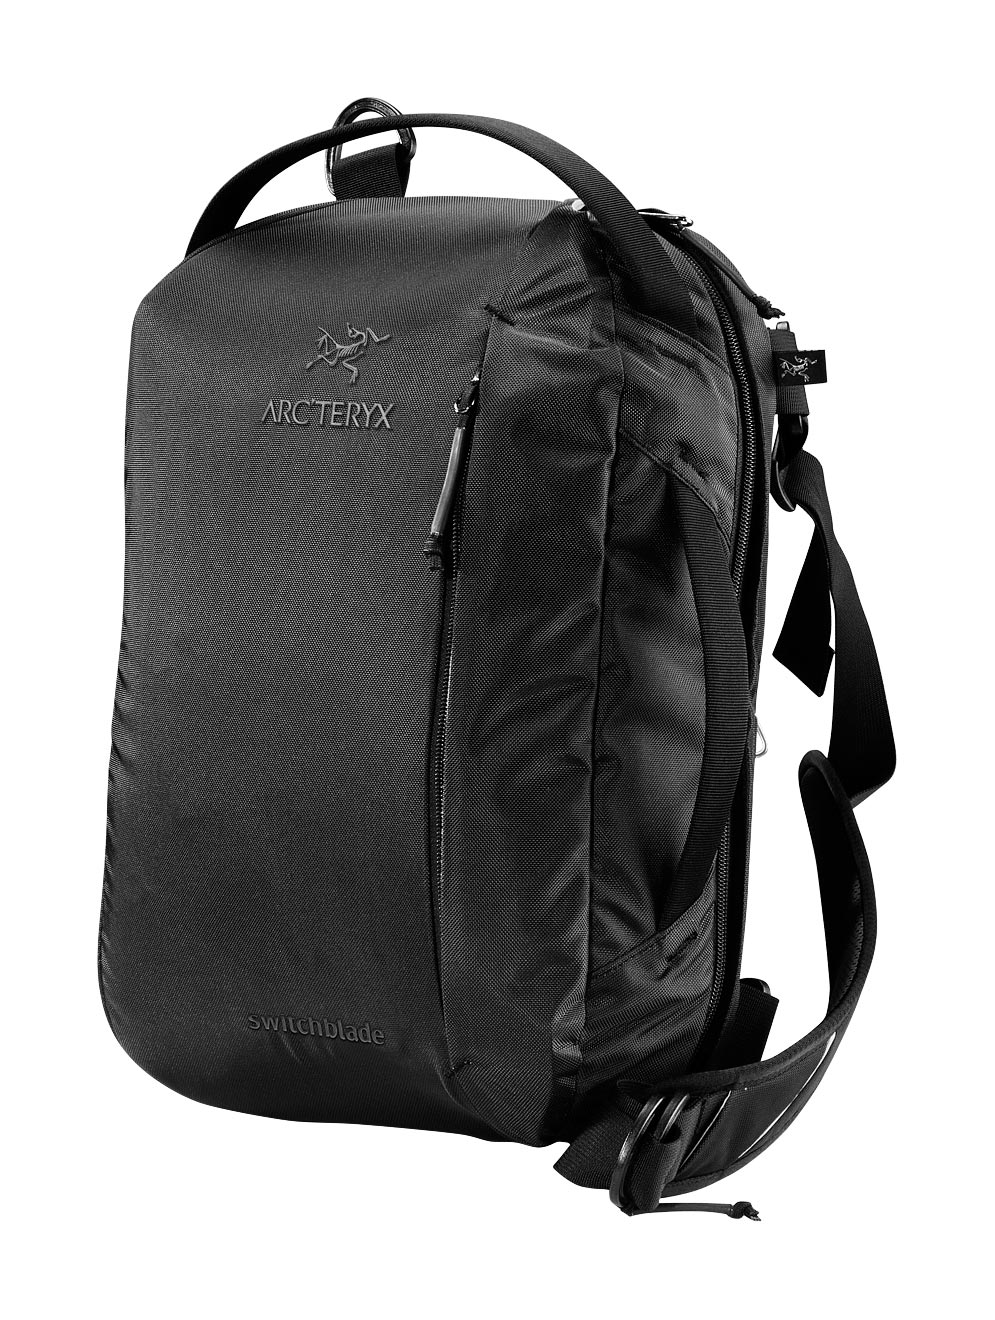 Arcteryx Black/Black Switchblade